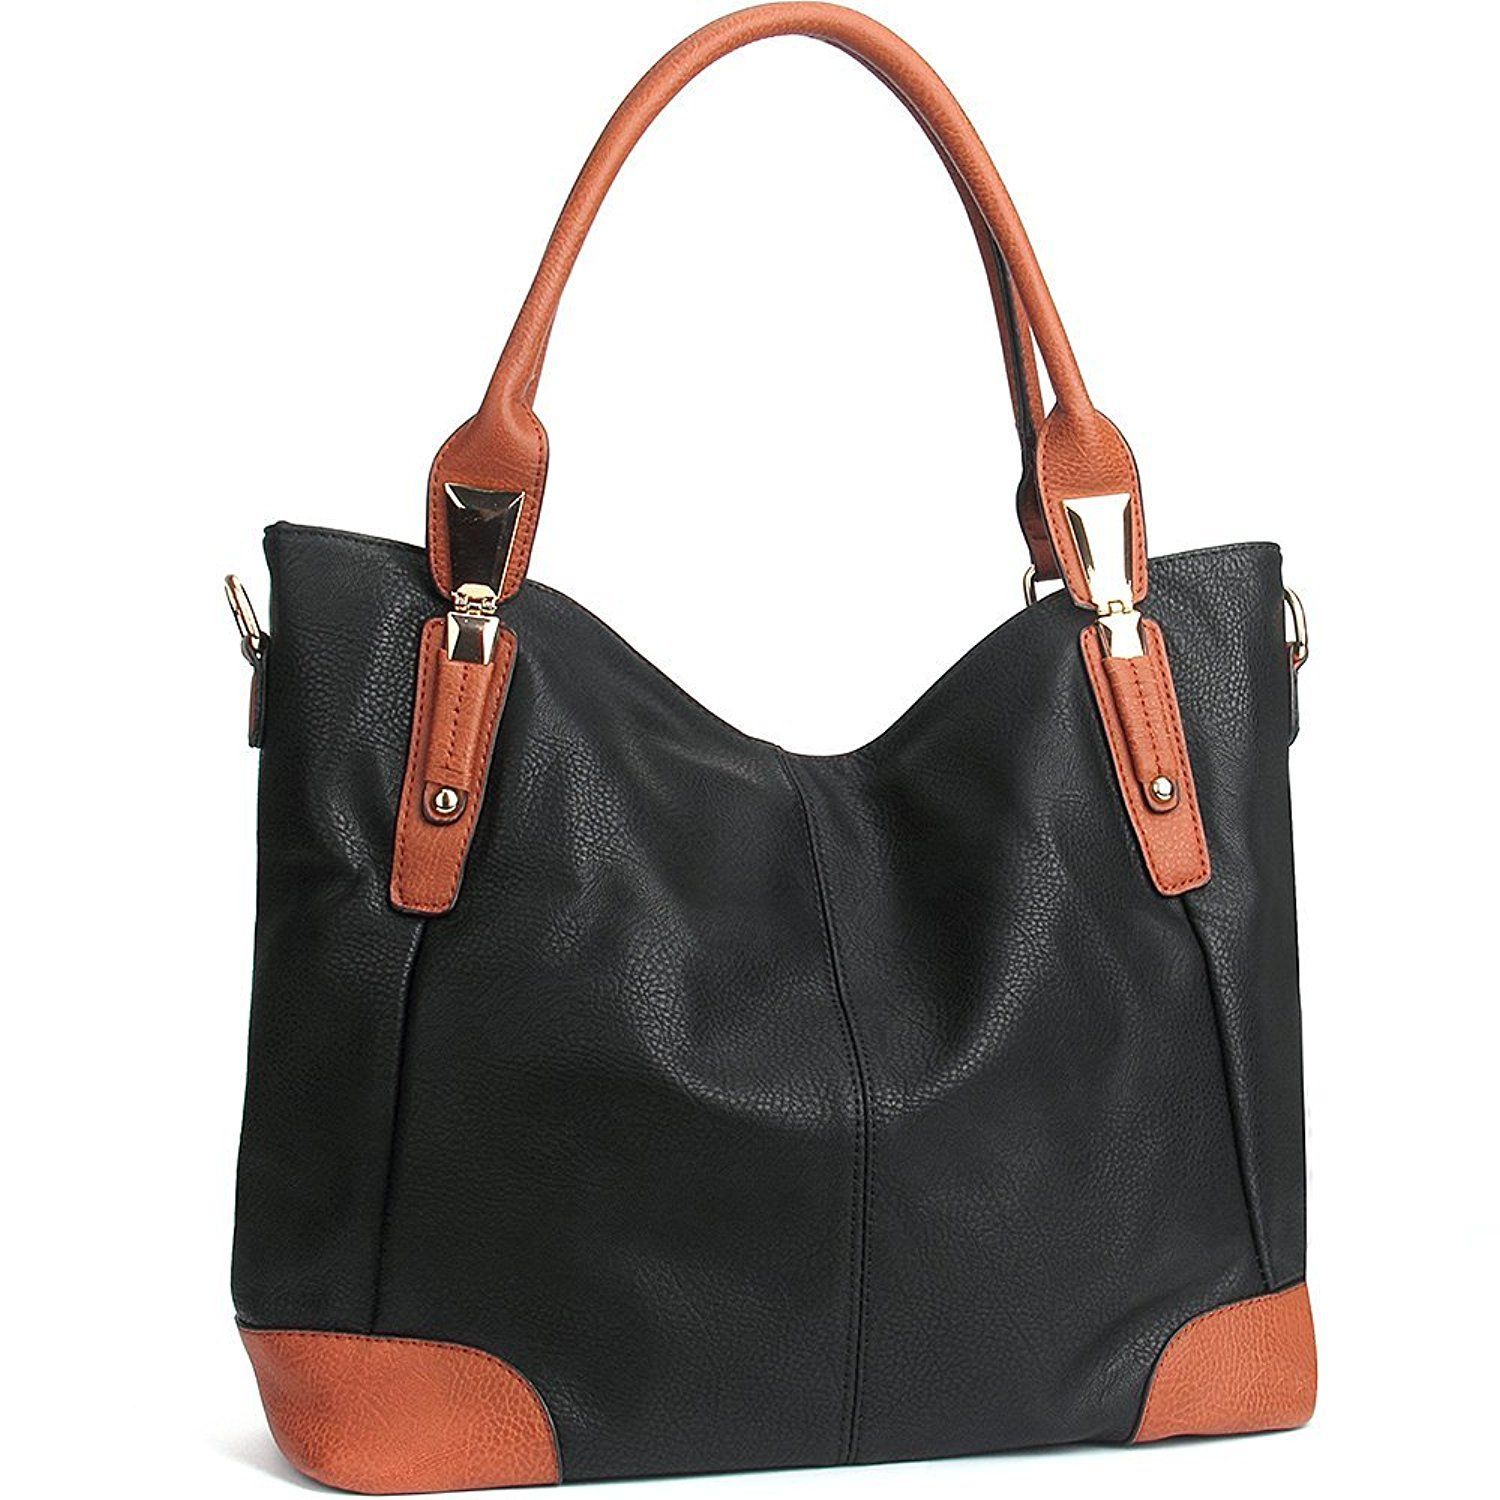 b7ad78cdfe JOYSON Women Handbags Tote Hobo Handbags Women Shoulder Bags PU Leather  Large Capacity Bags    Learn more by visiting the image link.